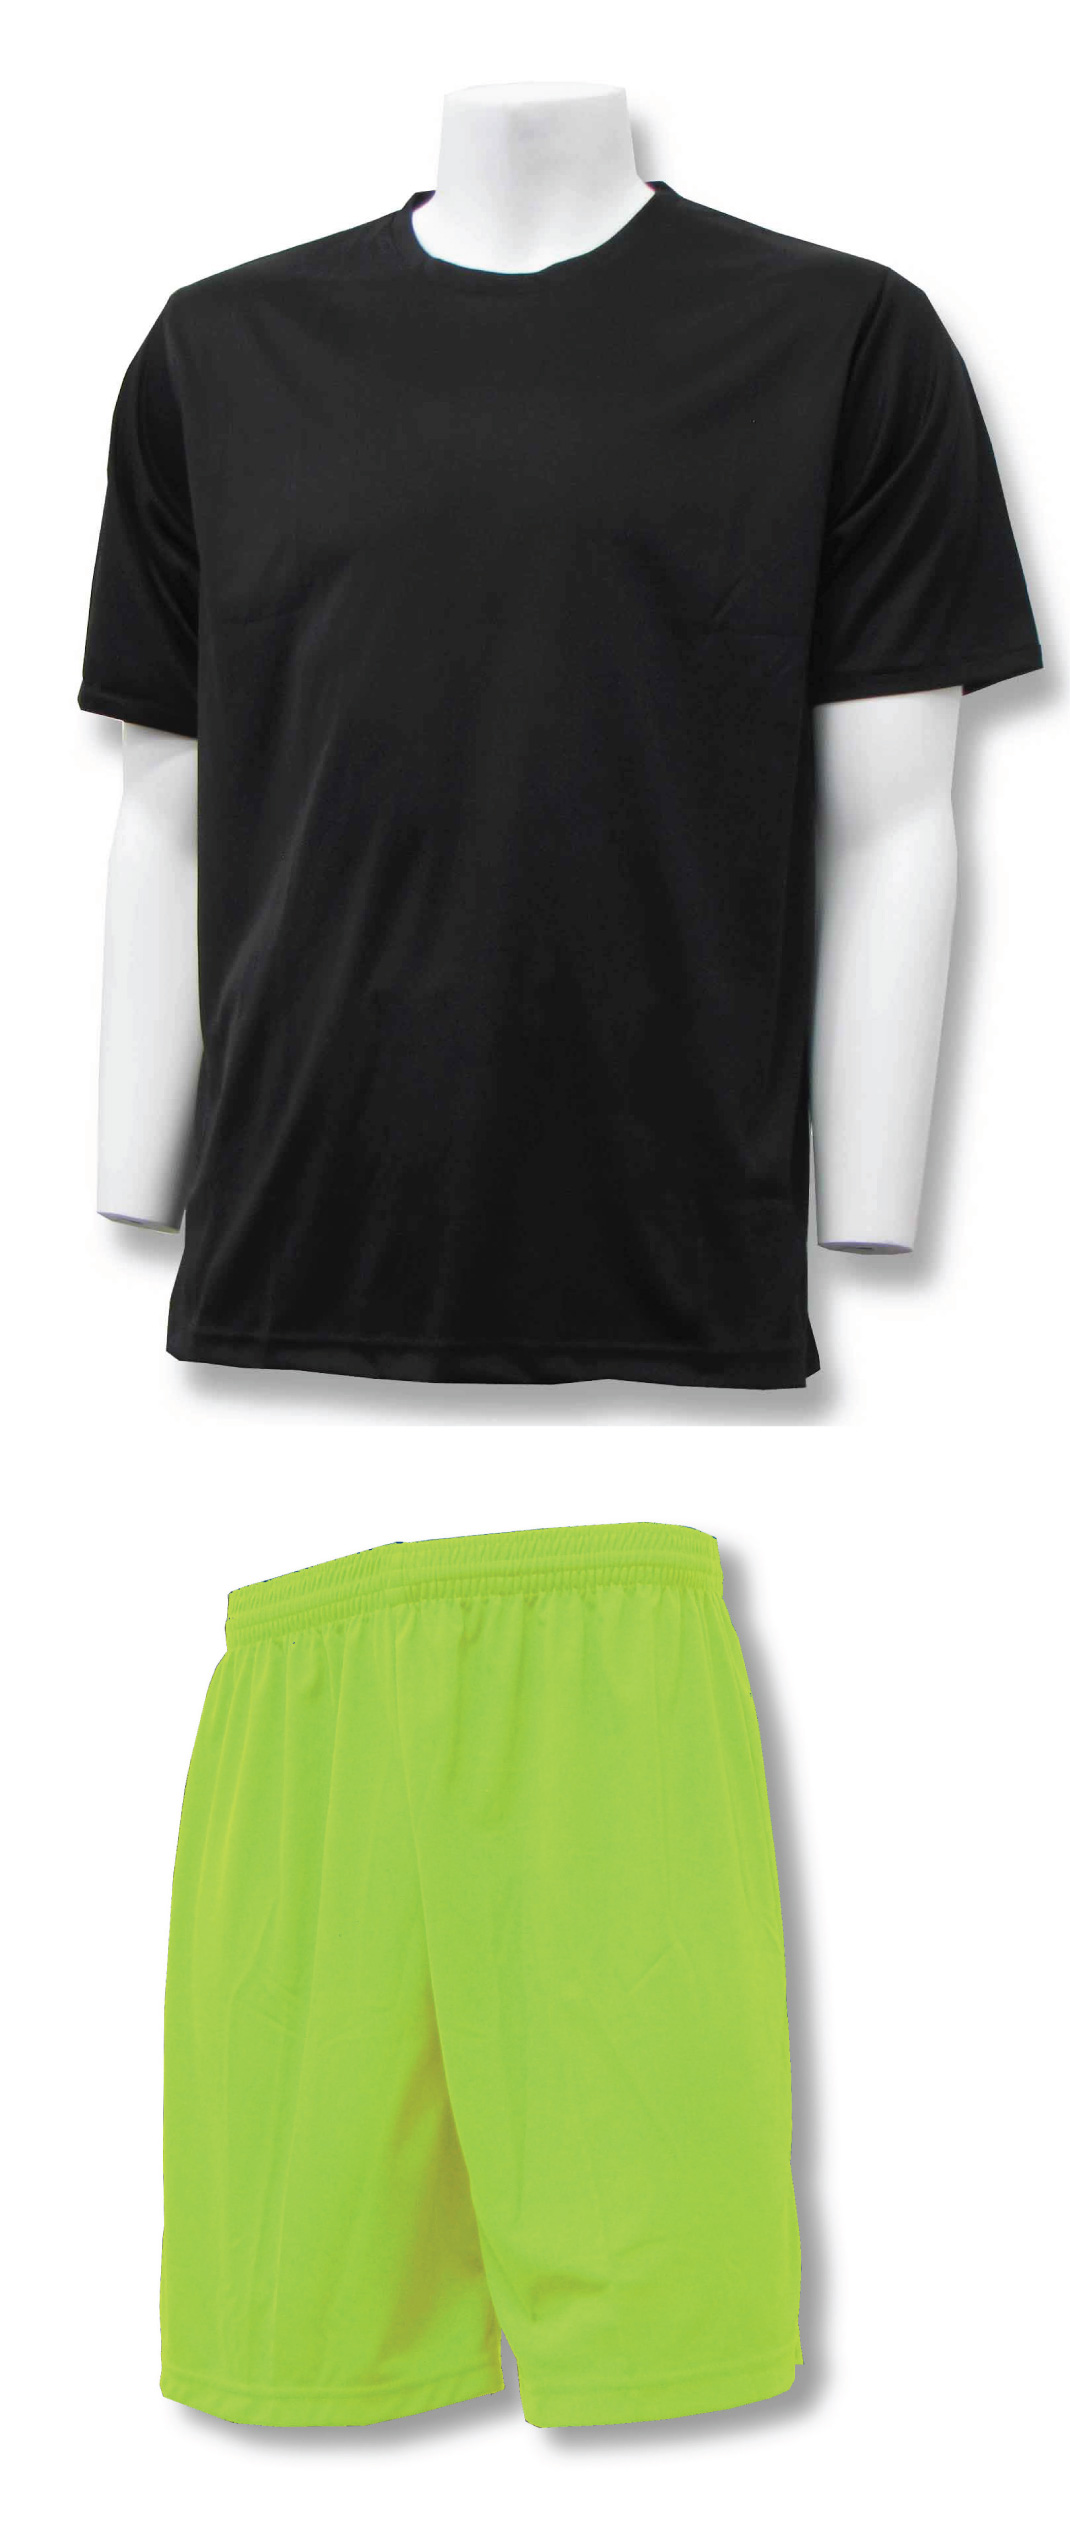 Soccer Training Uniform kit in black/lime by Code Four Athletics